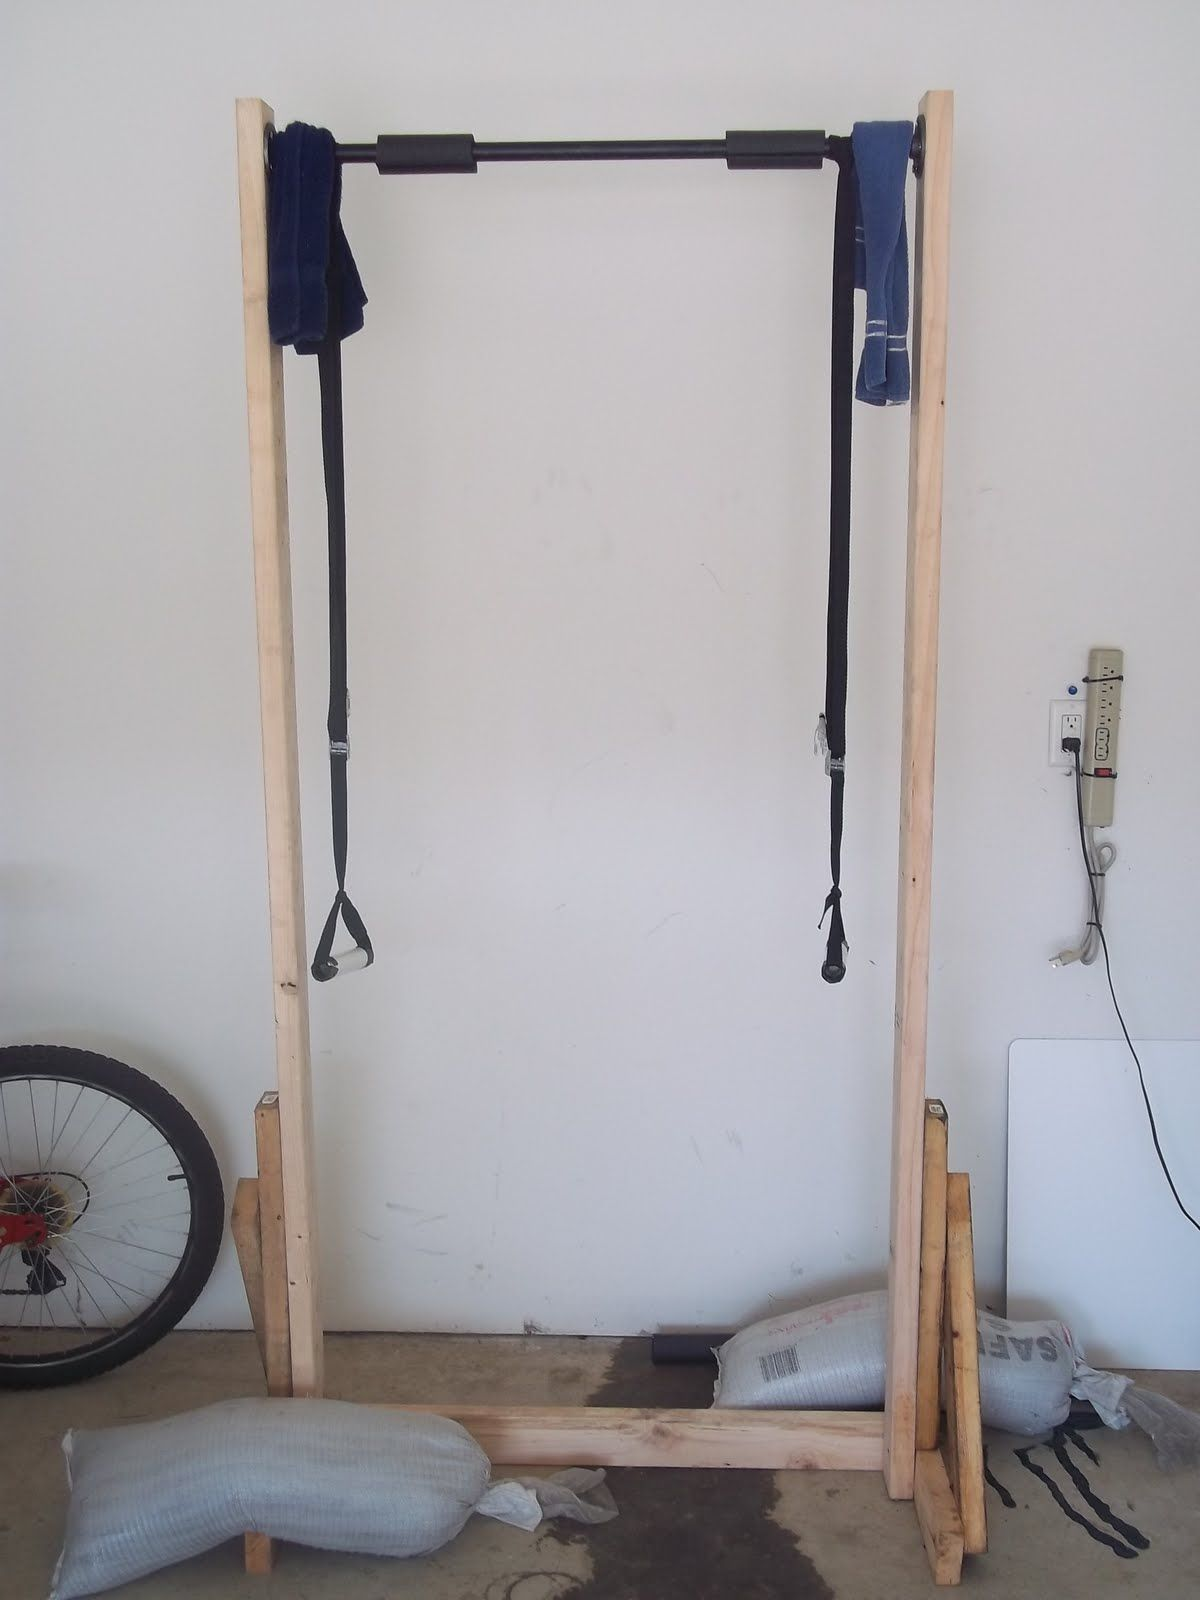 I Ve Wanted A Freestanding Pull Up Unit For The Garage For A While